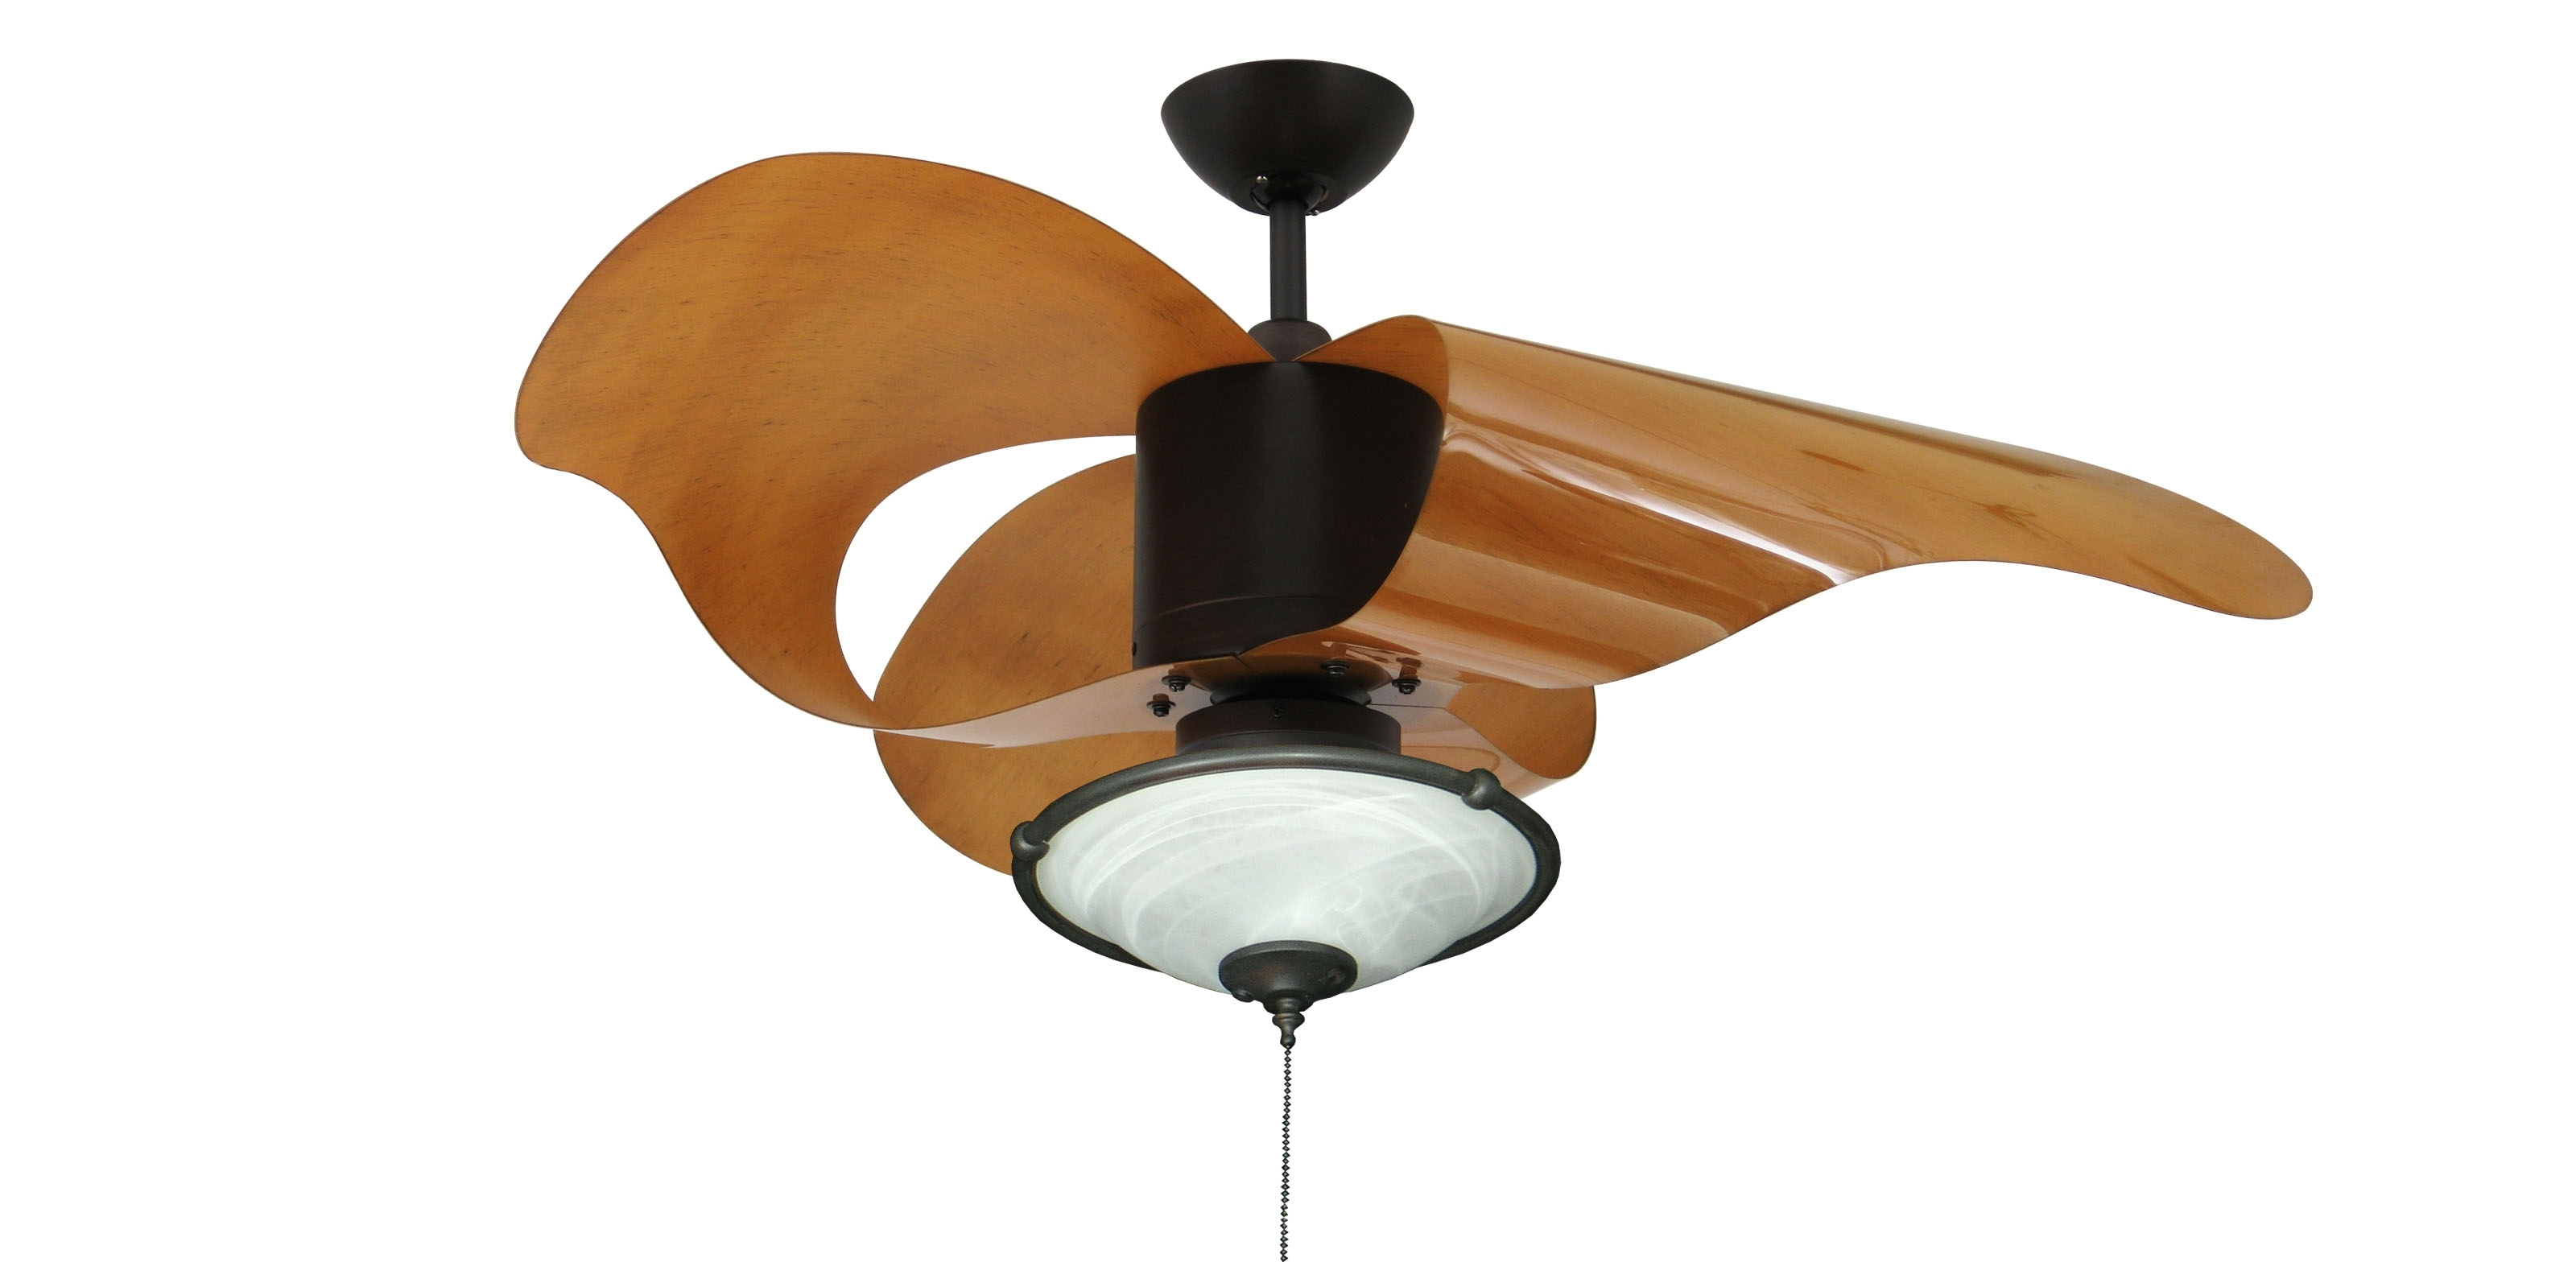 Outdoor Ceiling Fan With Light And Remote – Tariqalhanaee Within 2018 Outdoor Ceiling Fans With Remote And Light (View 8 of 20)